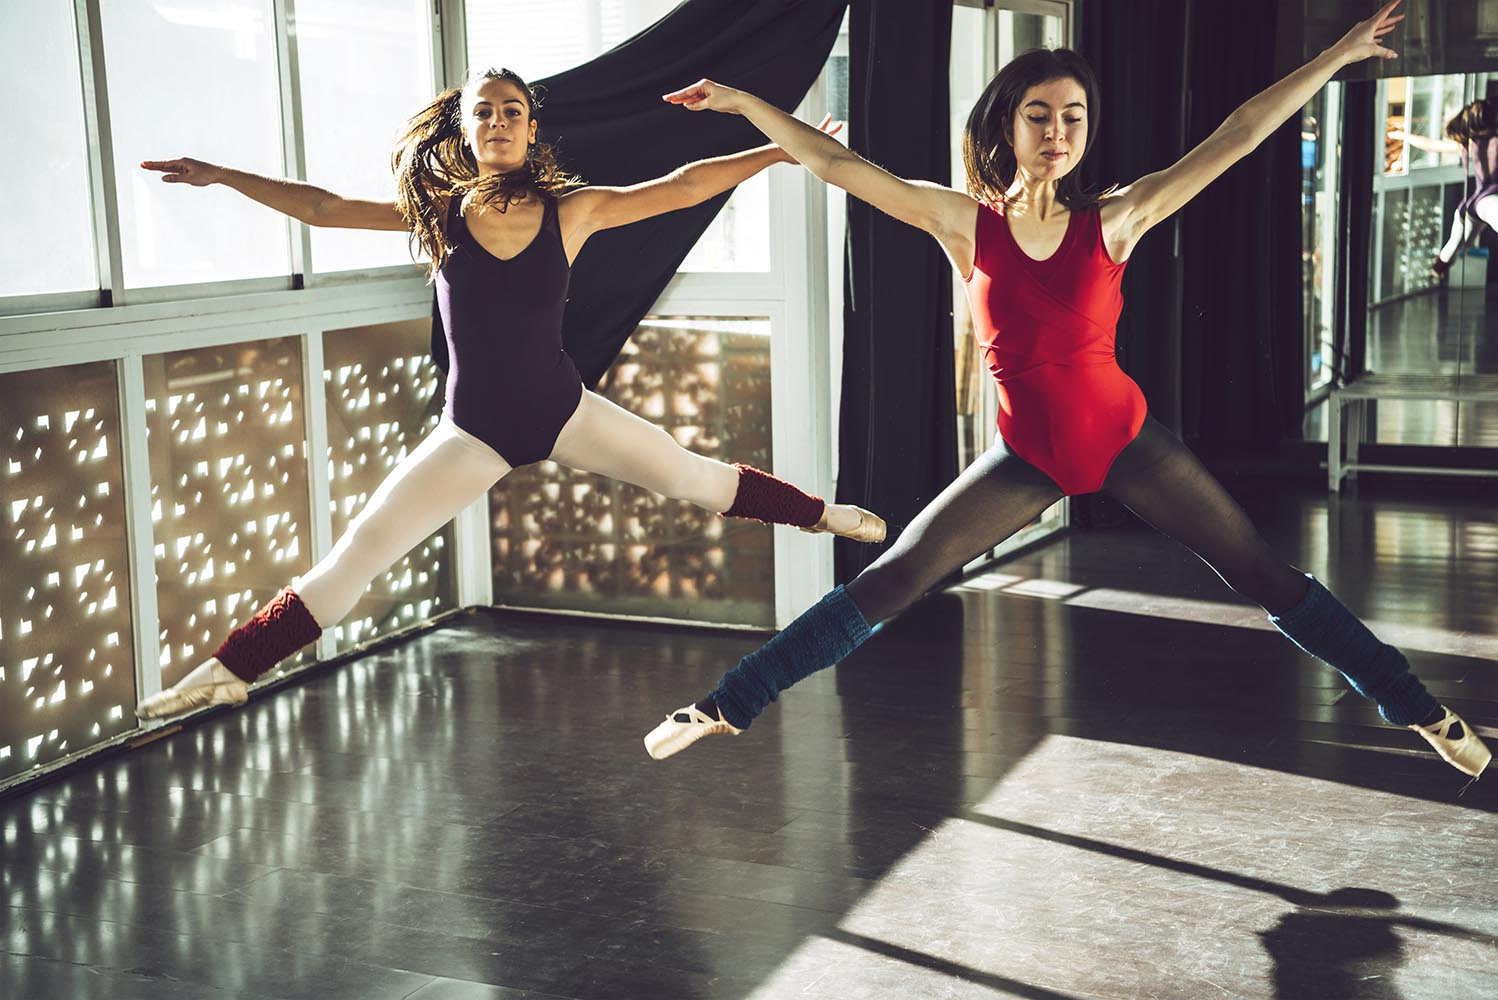 Dancers in jump above ground